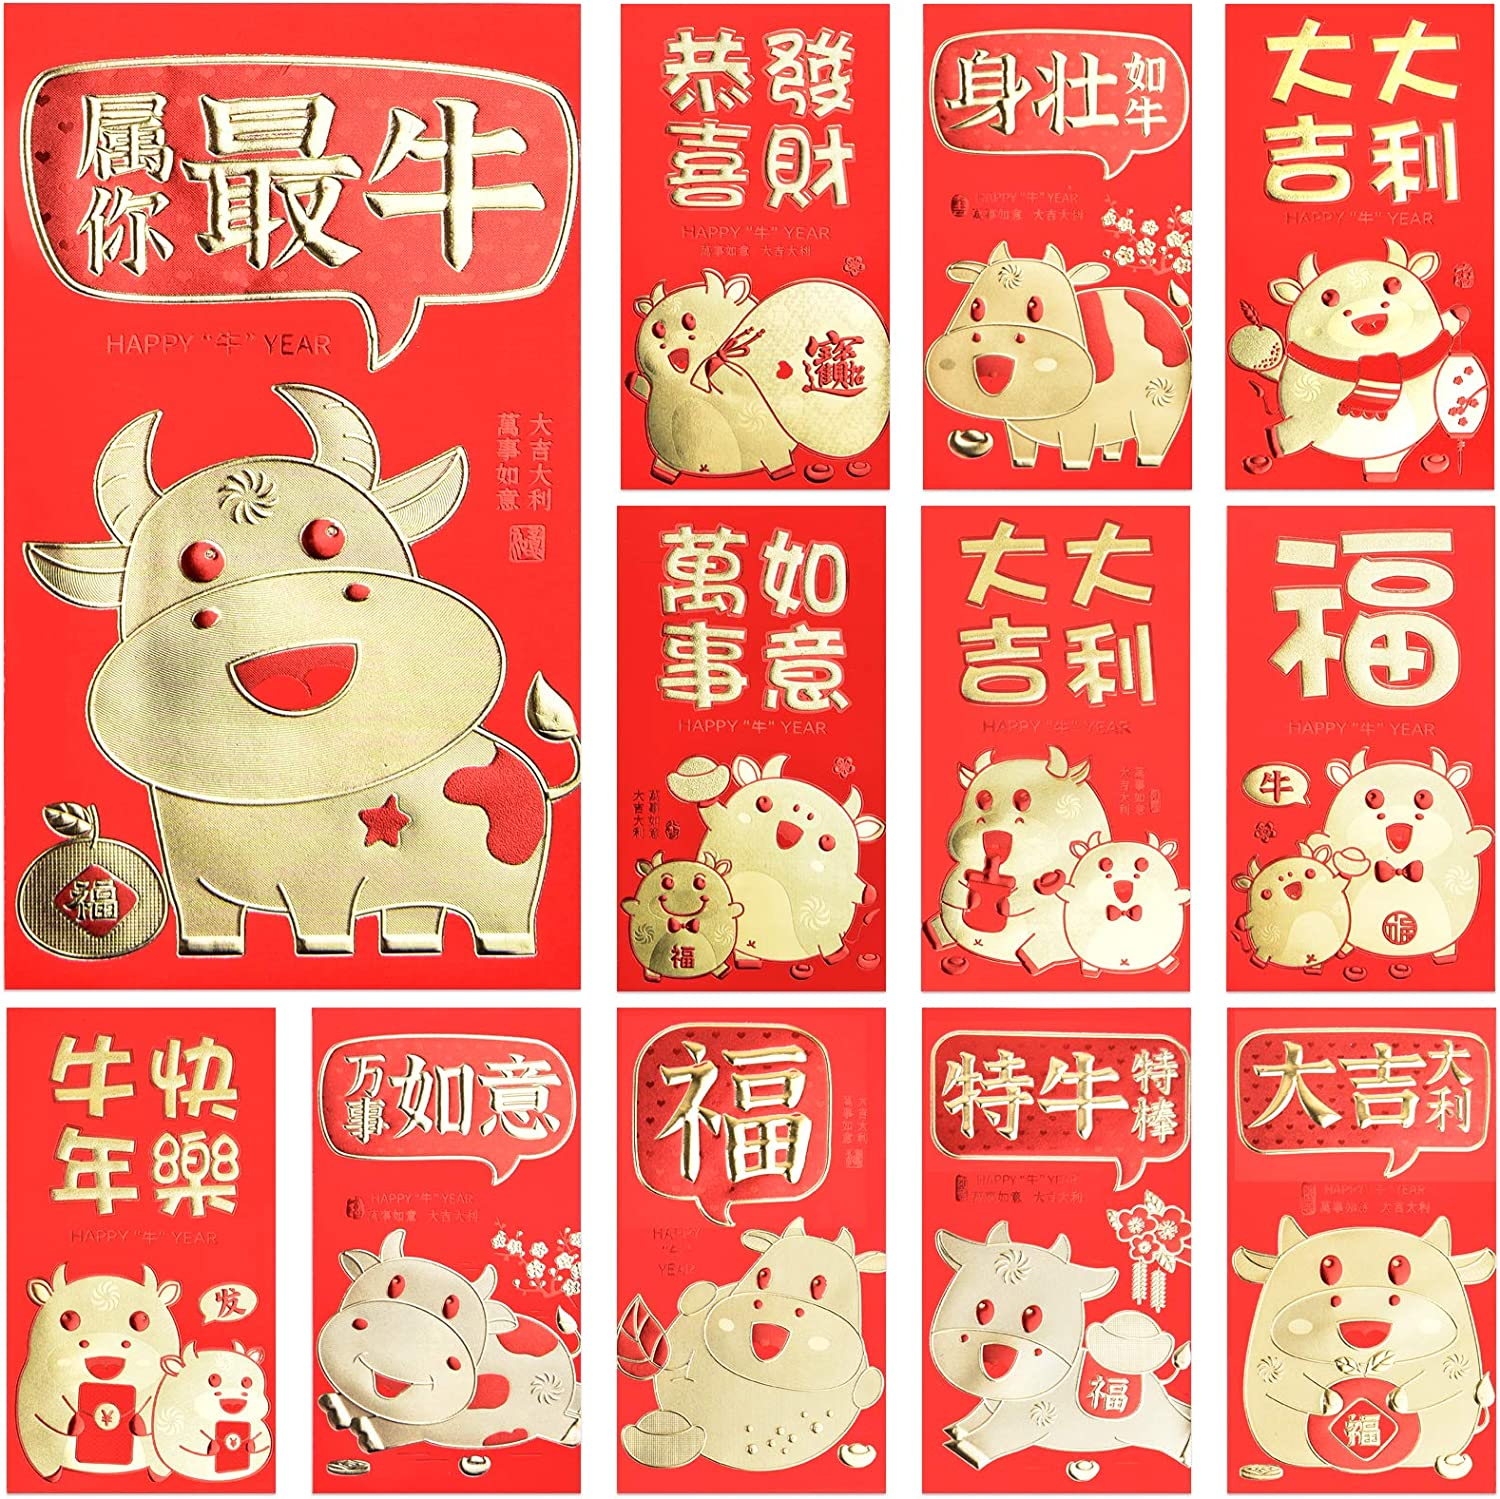 Coopay 36 Pieces Chinese New Red Year Envelopes Envelo Money Super popular Max 90% OFF specialty store